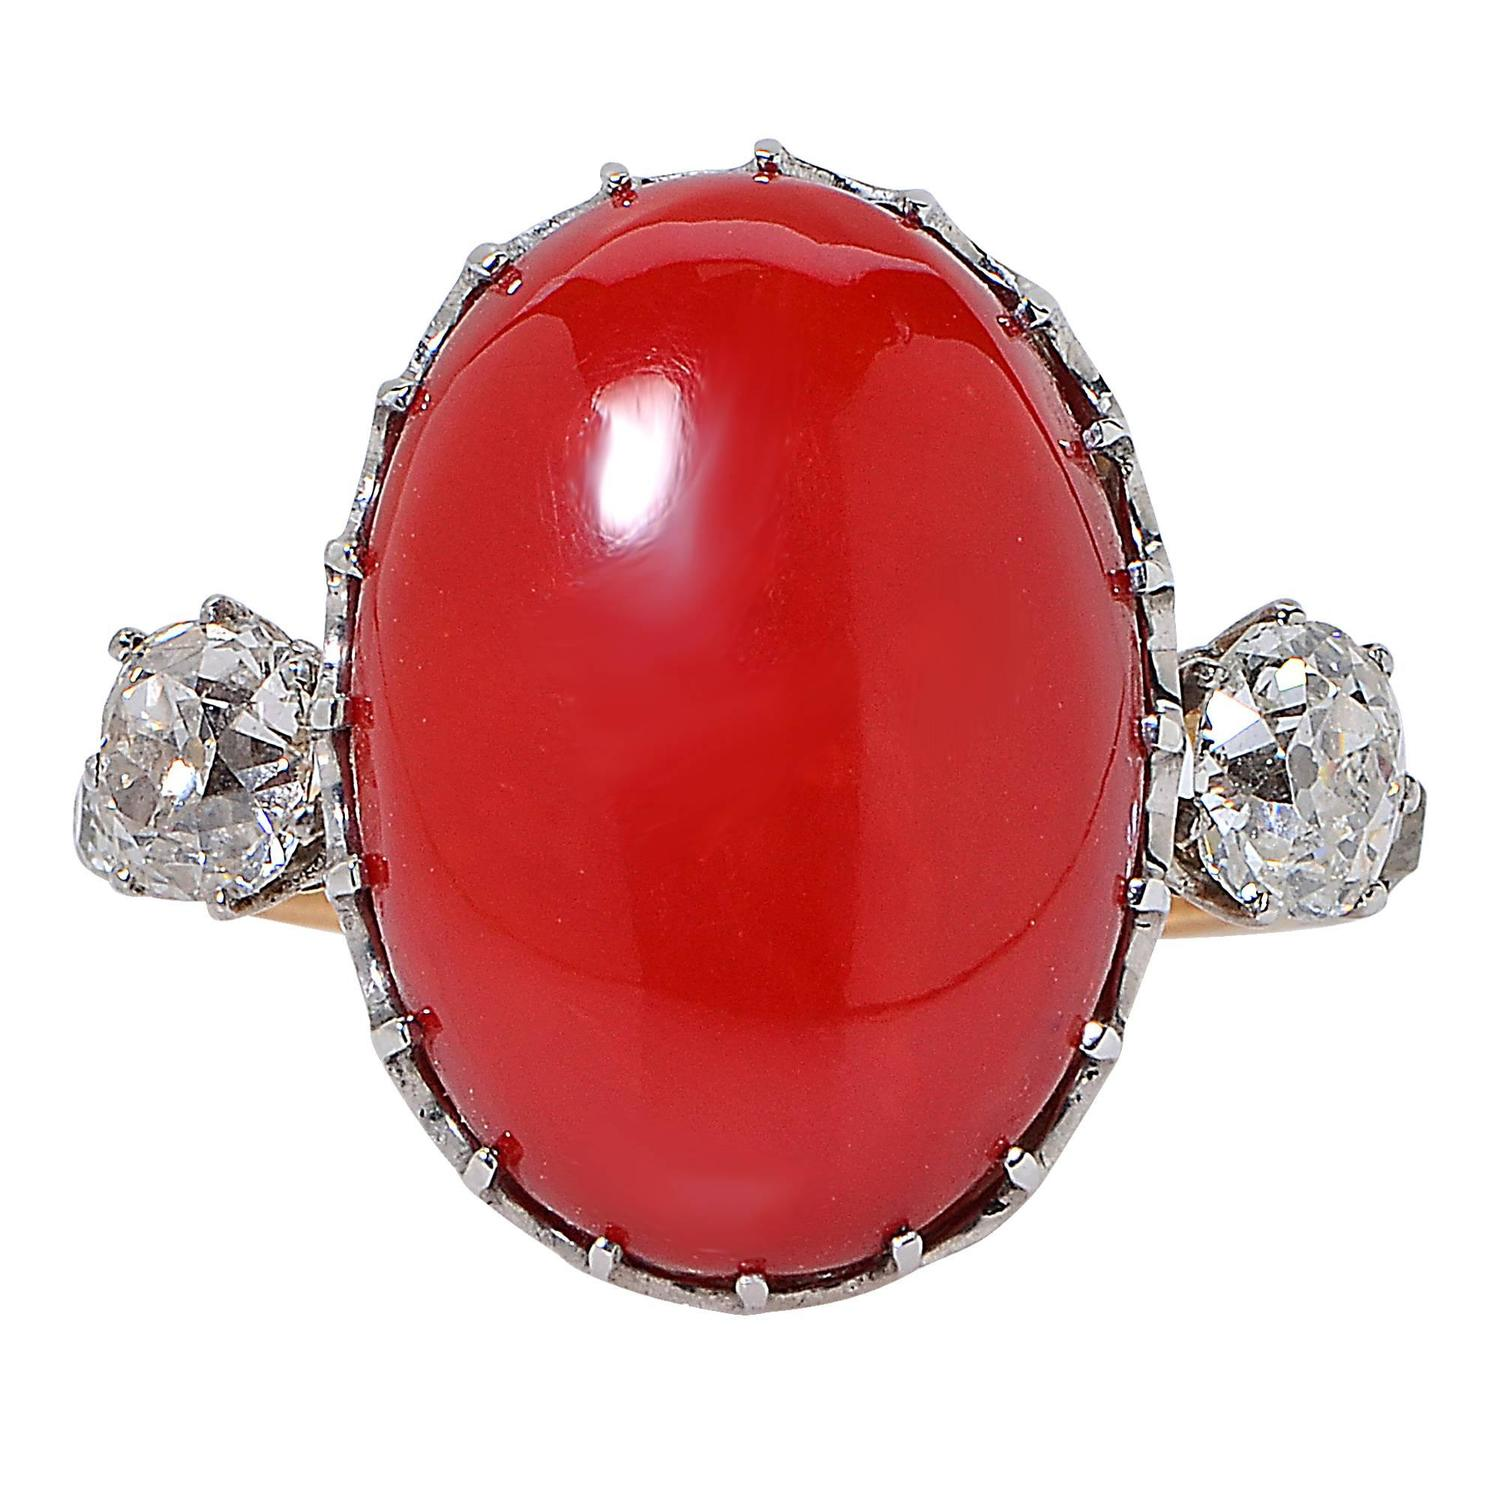 antique coral and ring at 1stdibs